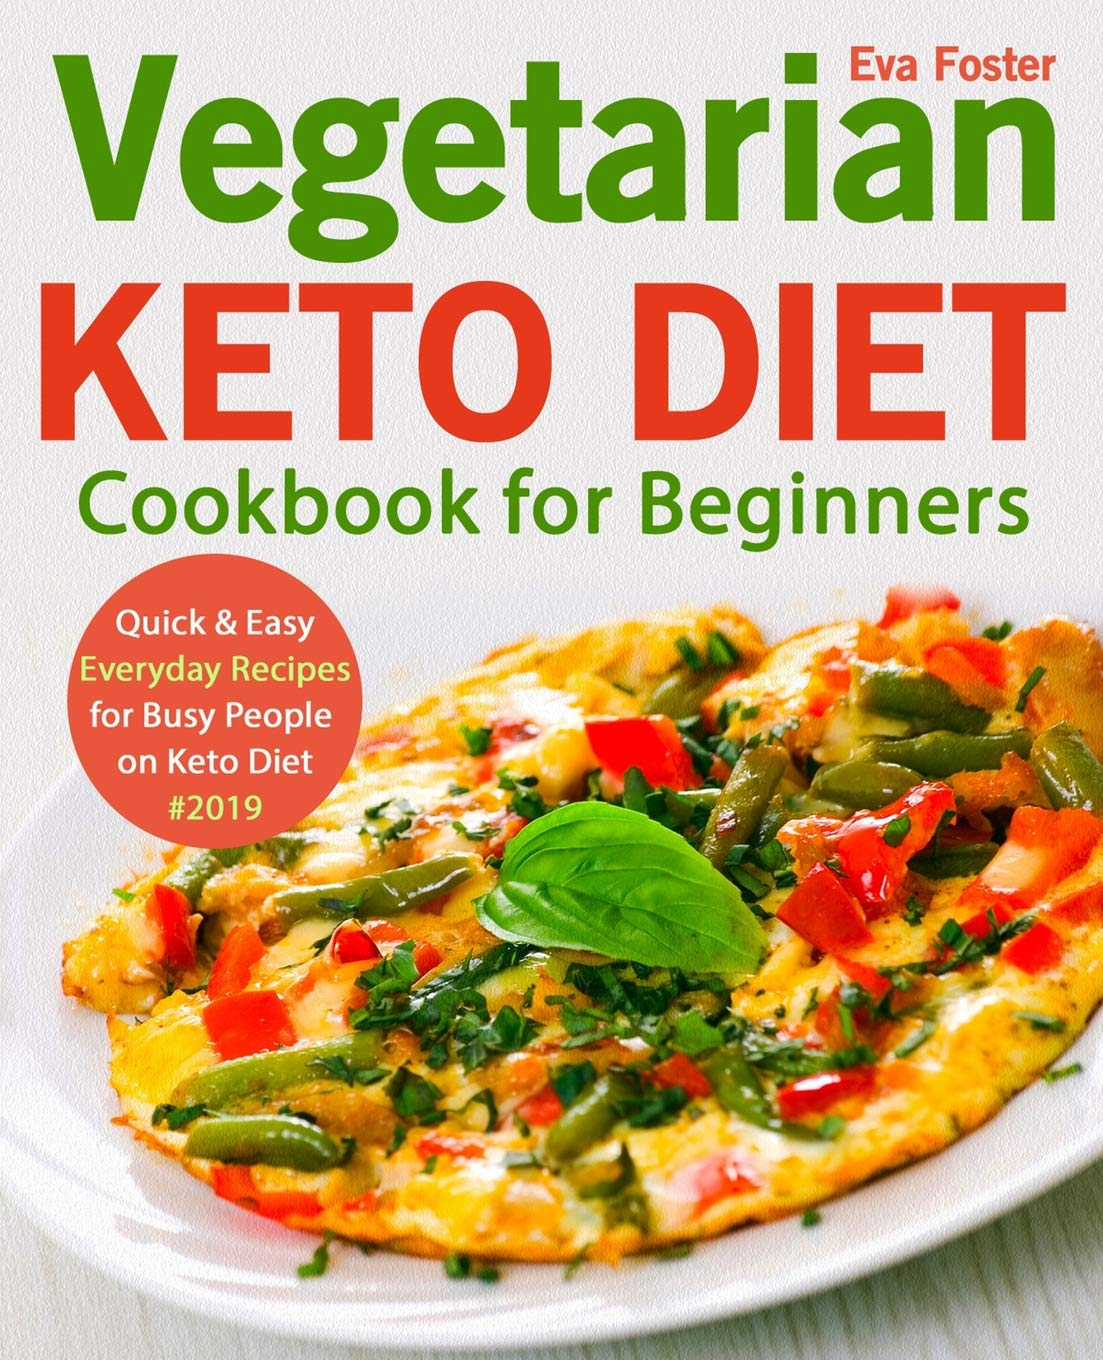 Vegetarian Keto Diet Cookbook For Beginners Quick Easy Everyday Recipes For Busy People On Keto Diet 2019 Keto Cookbook Foster Eva 9781070944524 Amazon Com Books